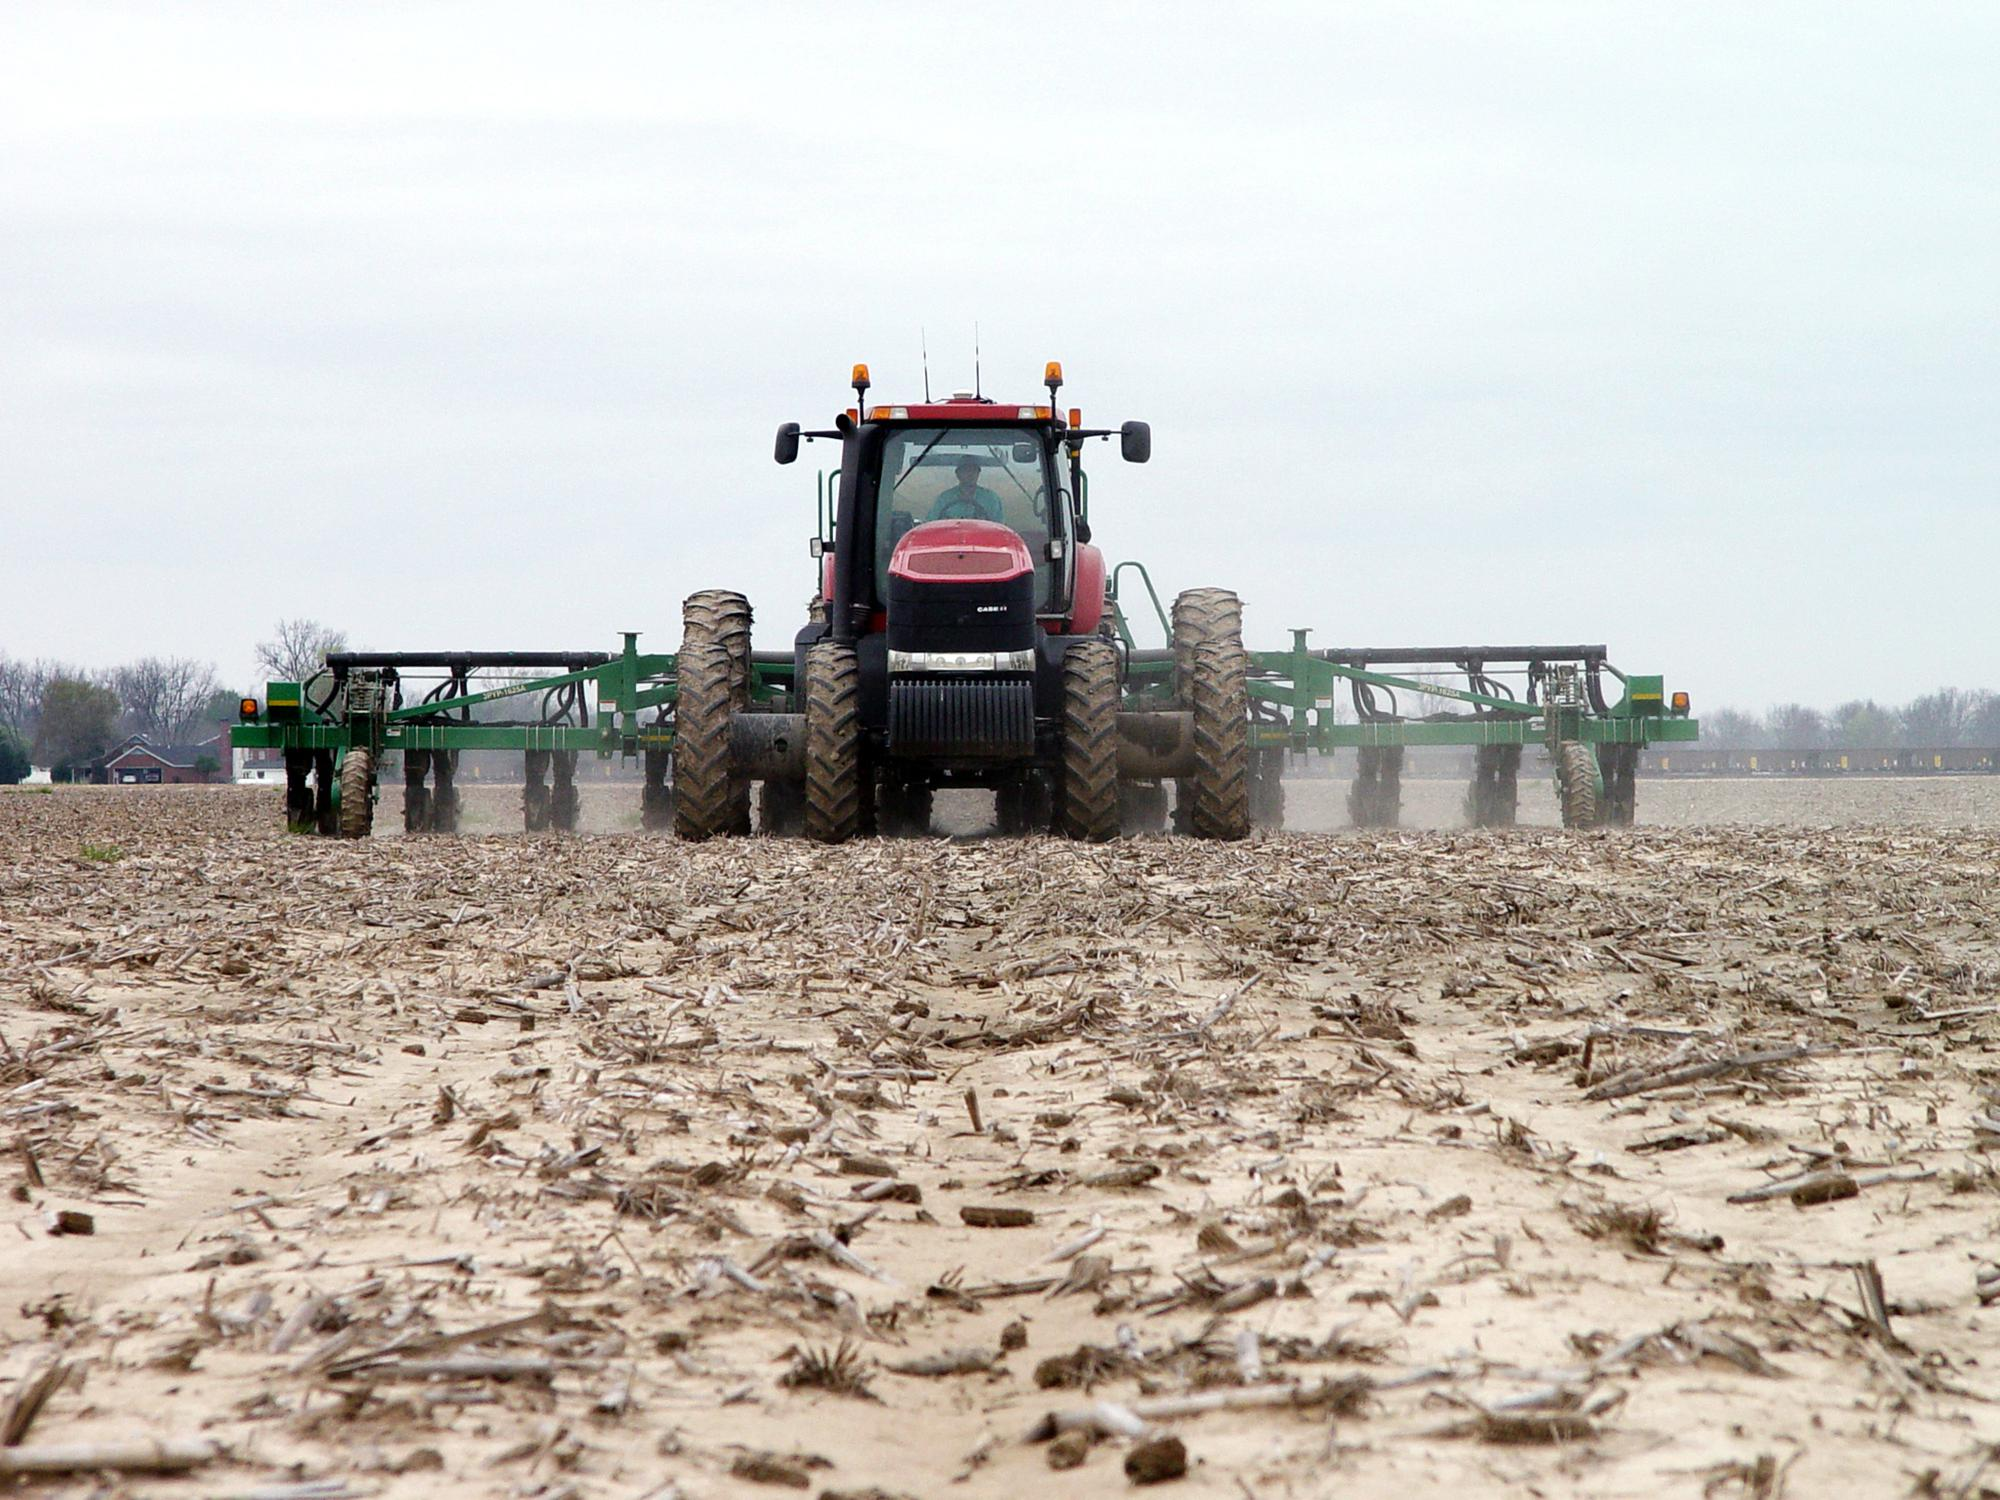 Like jets lining up on a runway, Mississippi growers are ready to take off and resume their planting as soon as the weather allows. Shaifer Bell of Huddleston Planting Co. is at the controls of this tractor as he plants corn near Metcalfe, Mississippi, on March 30, 2016. (Photo by MSU Delta Research and Extension Center Communication Department)